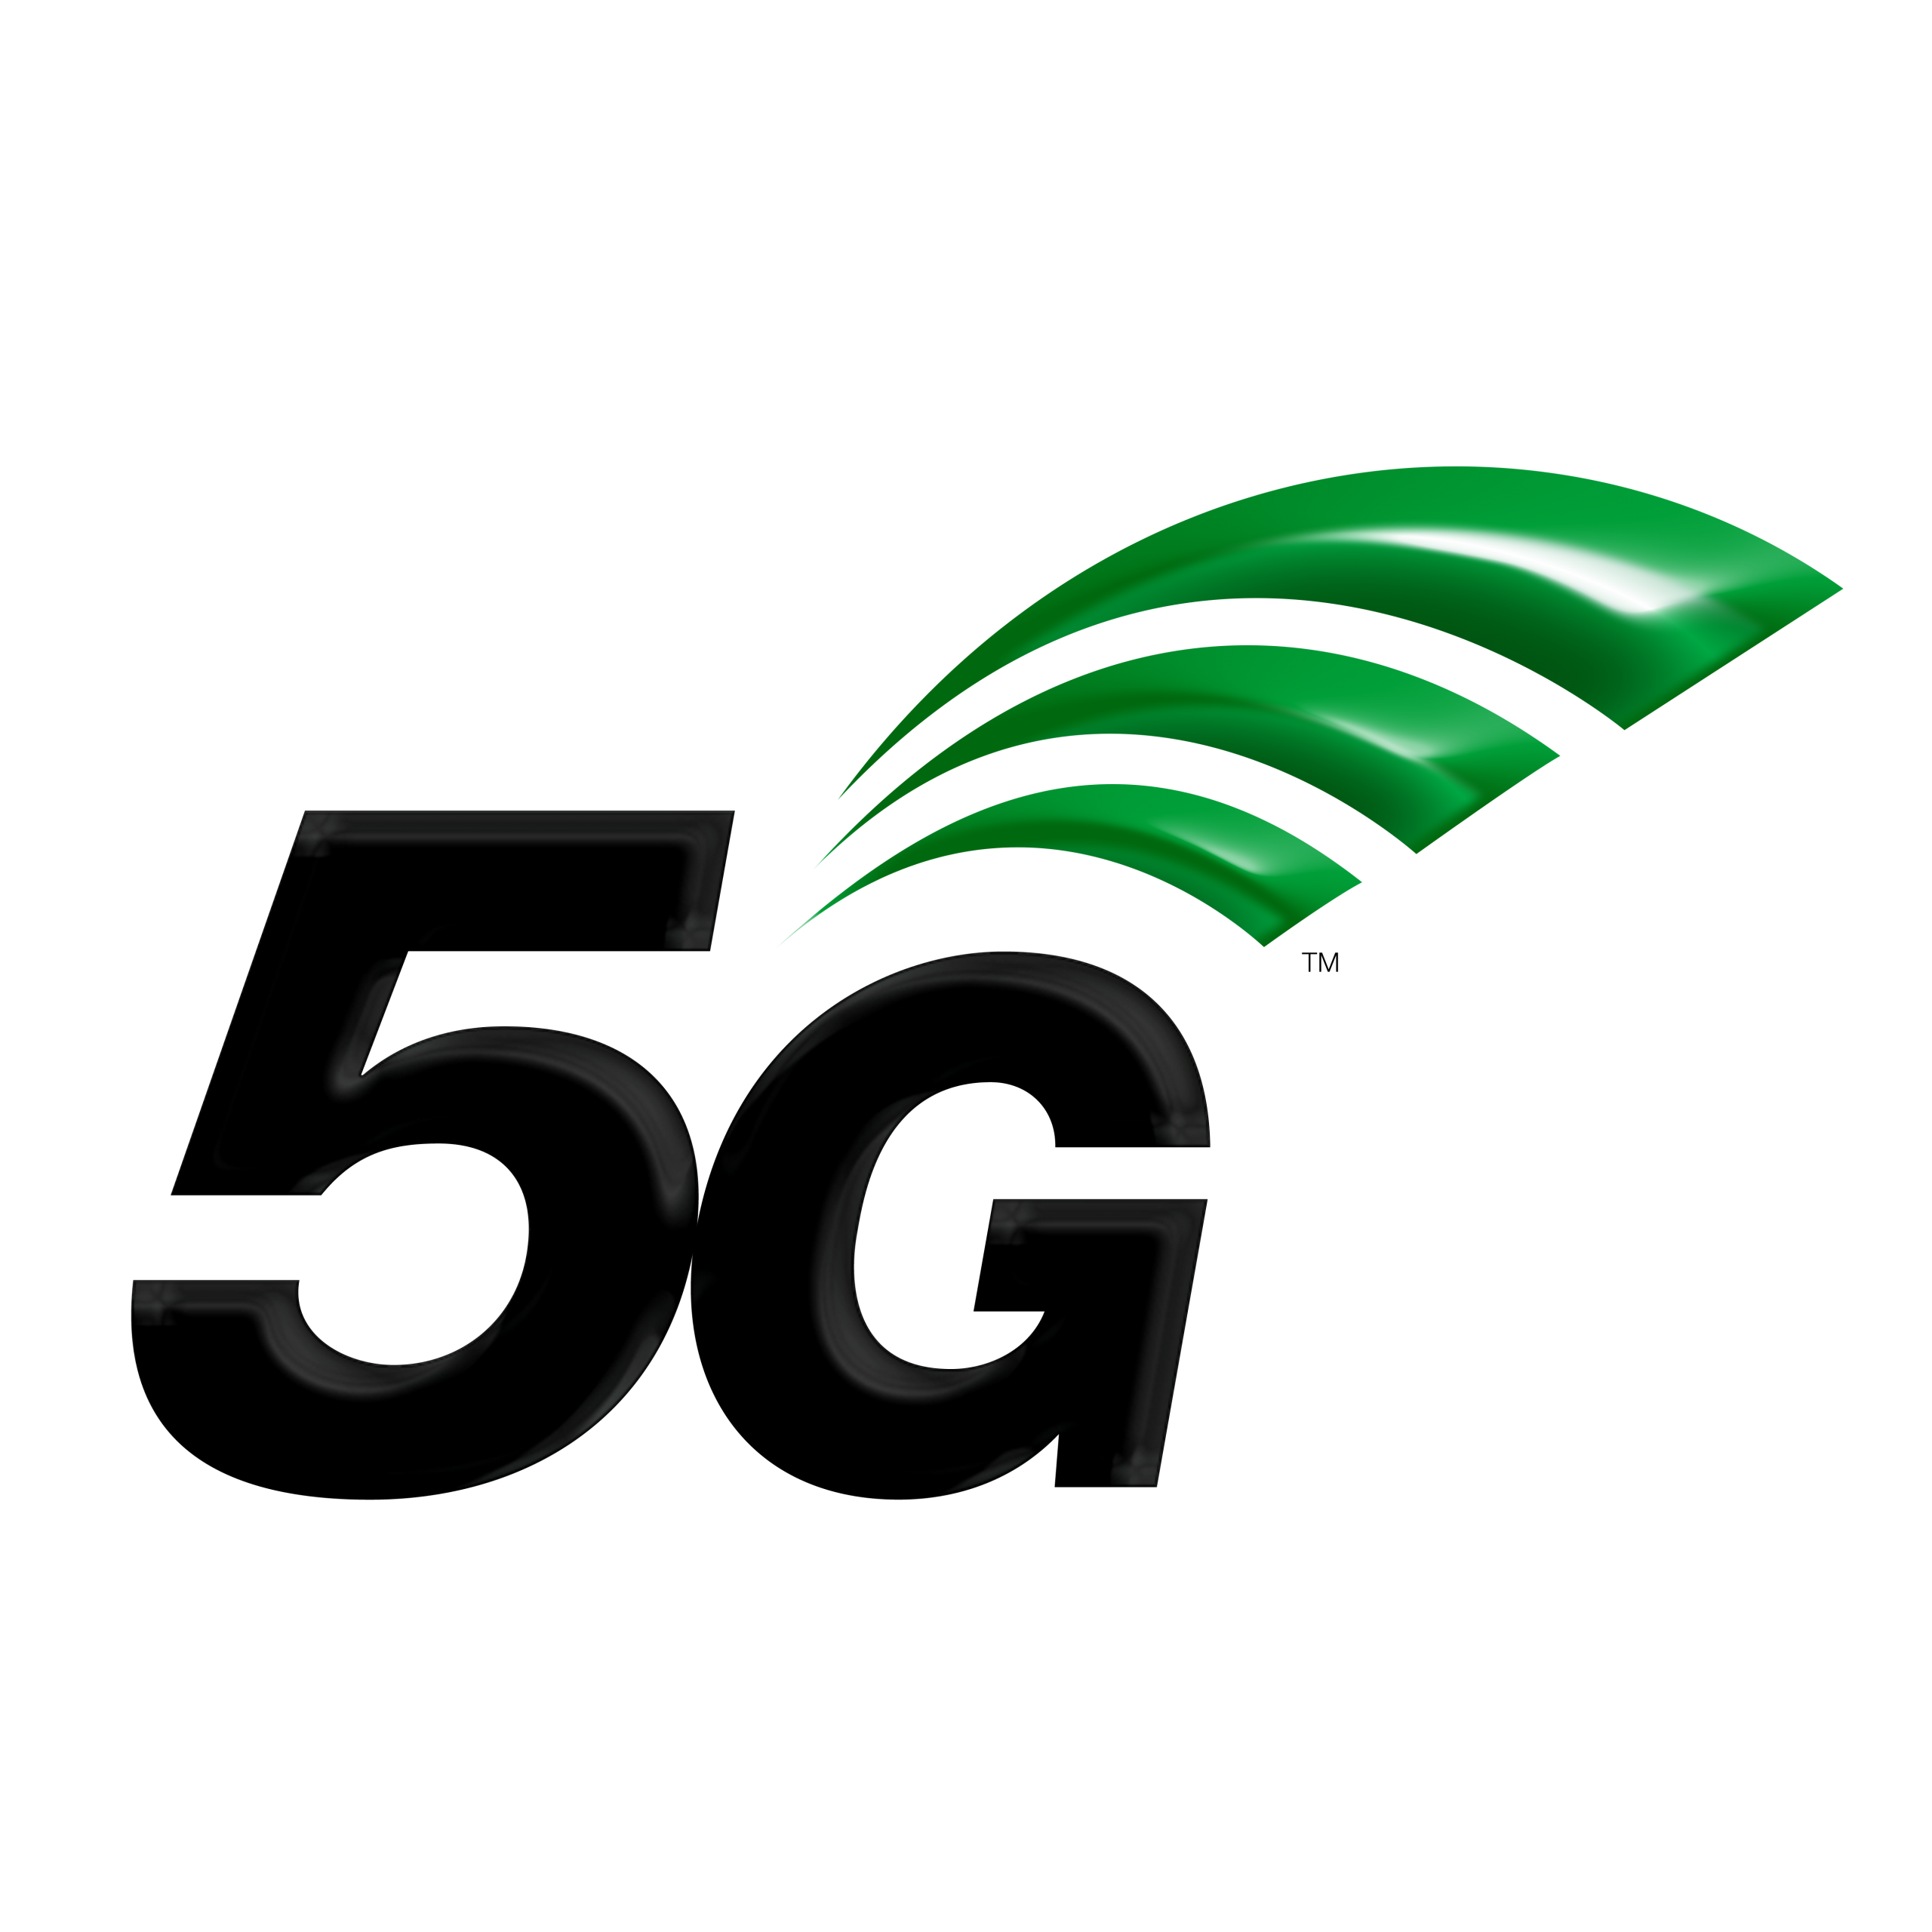 Open Access 5G Networks